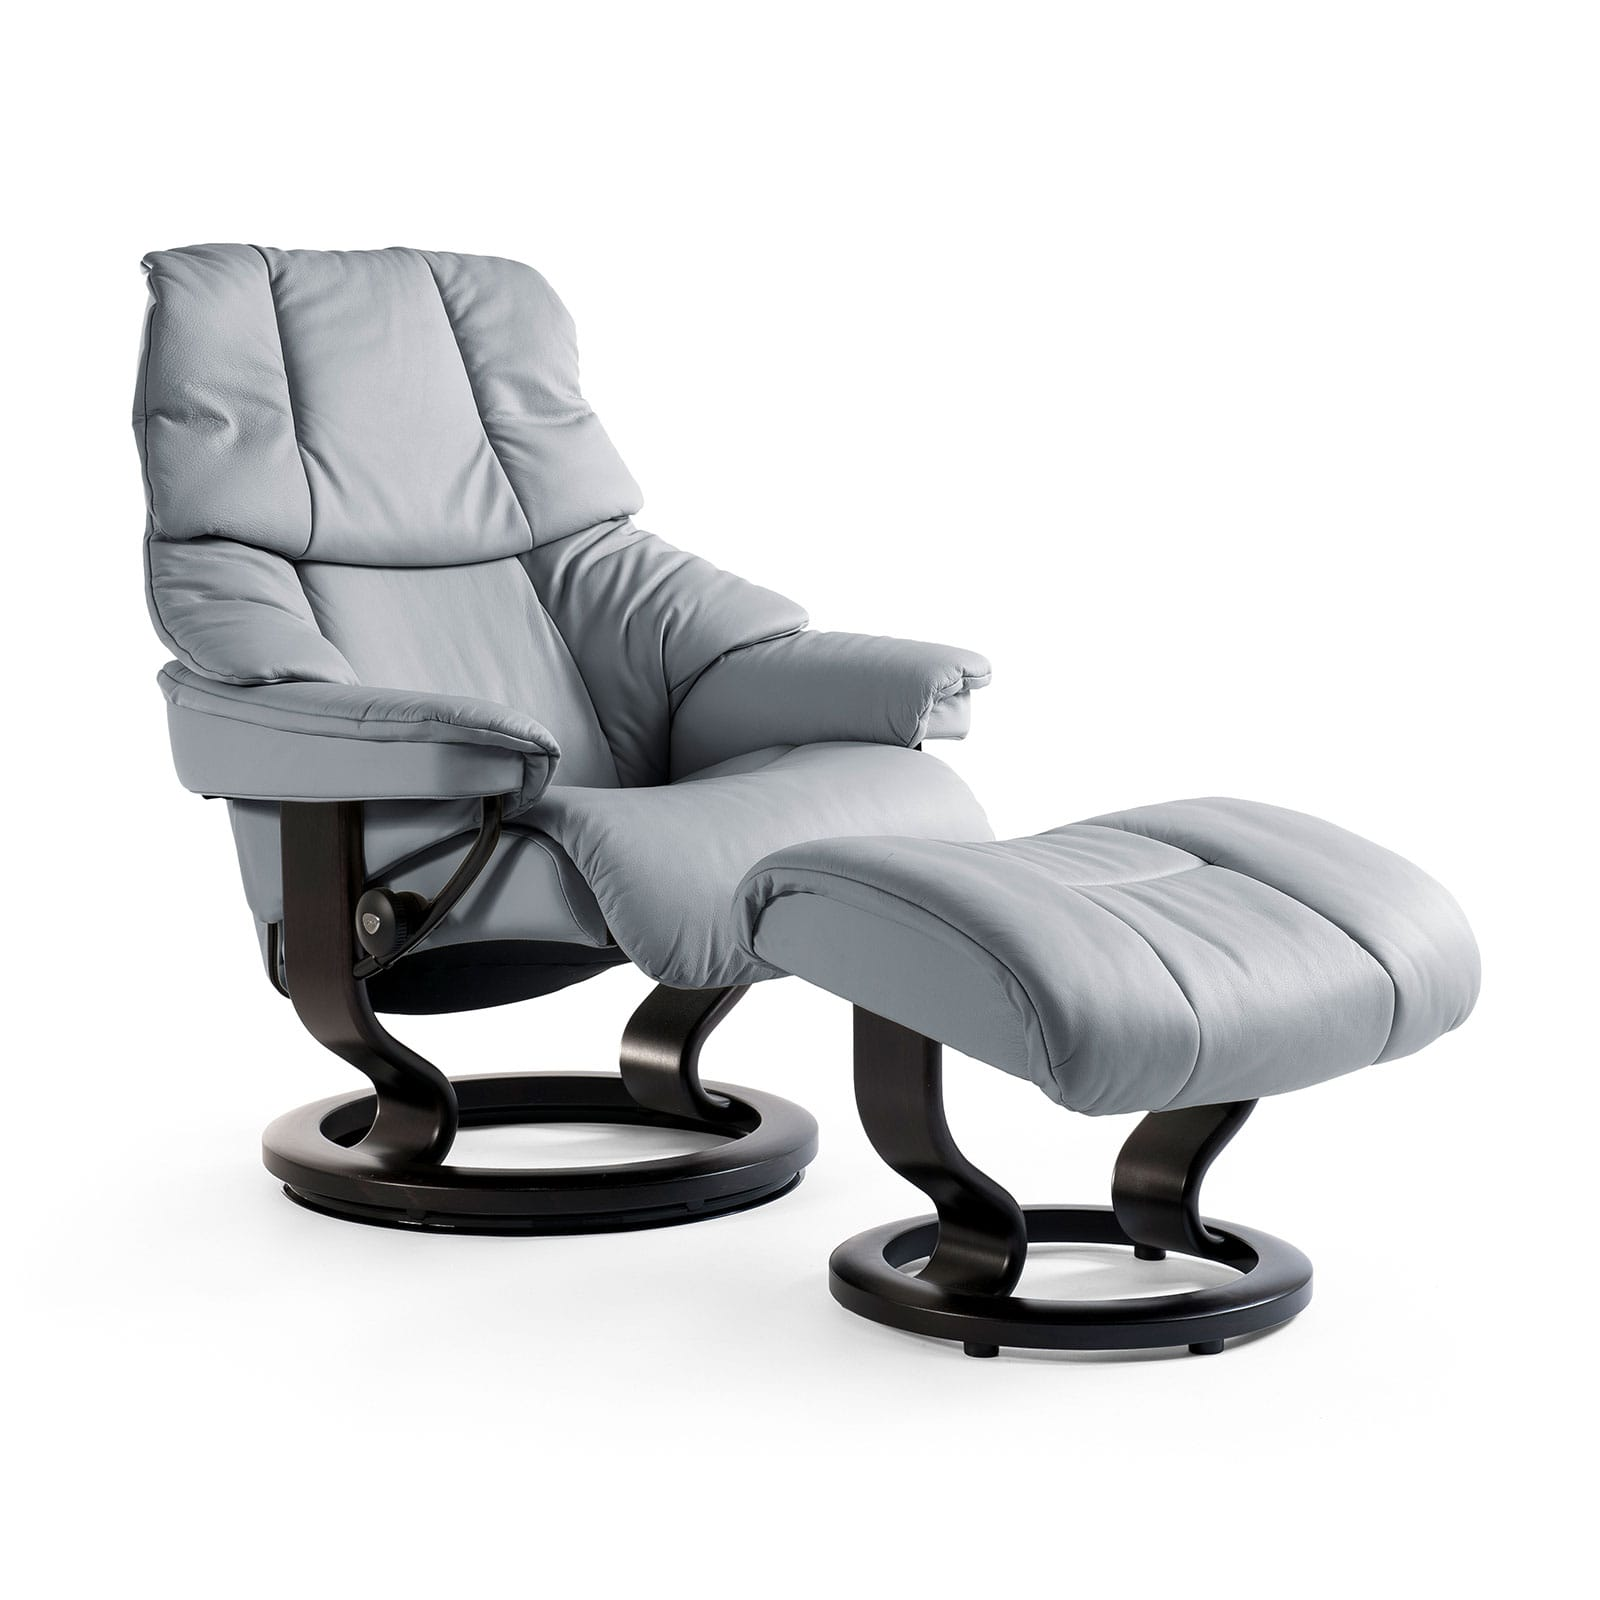 Stressless Sessel Höffner Stressless Sessel Reno Batick Grey Mit Hocker Stressless